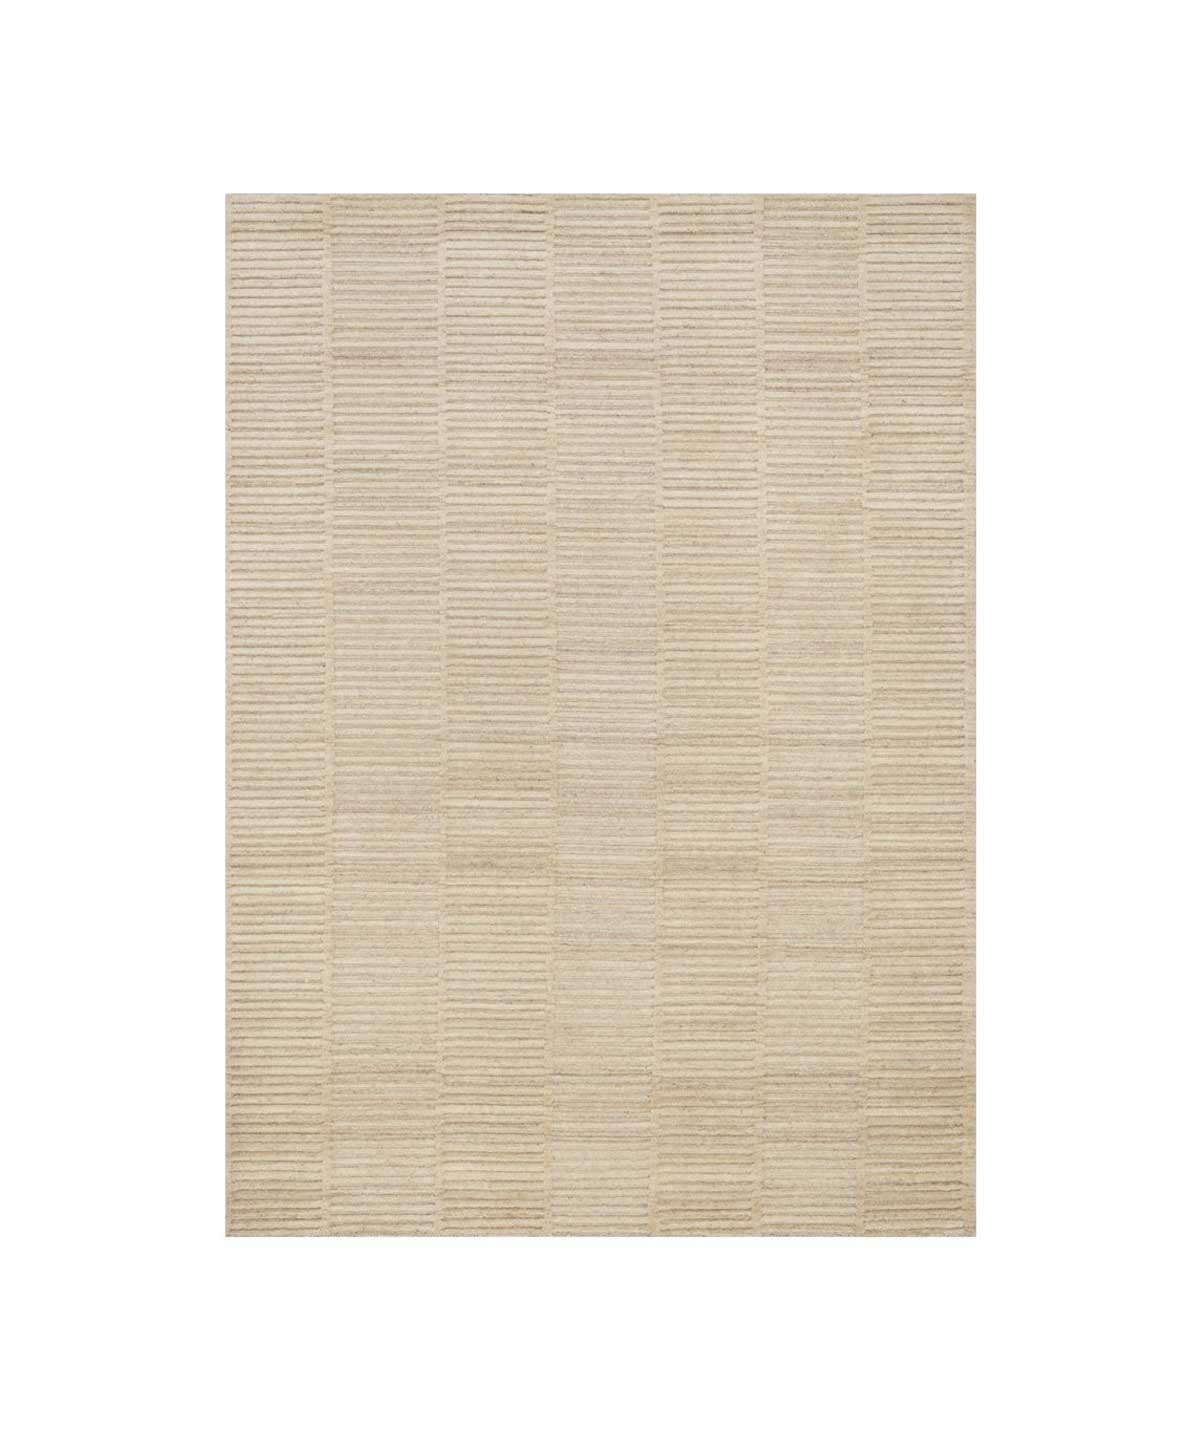 Hadley Rug in Natural